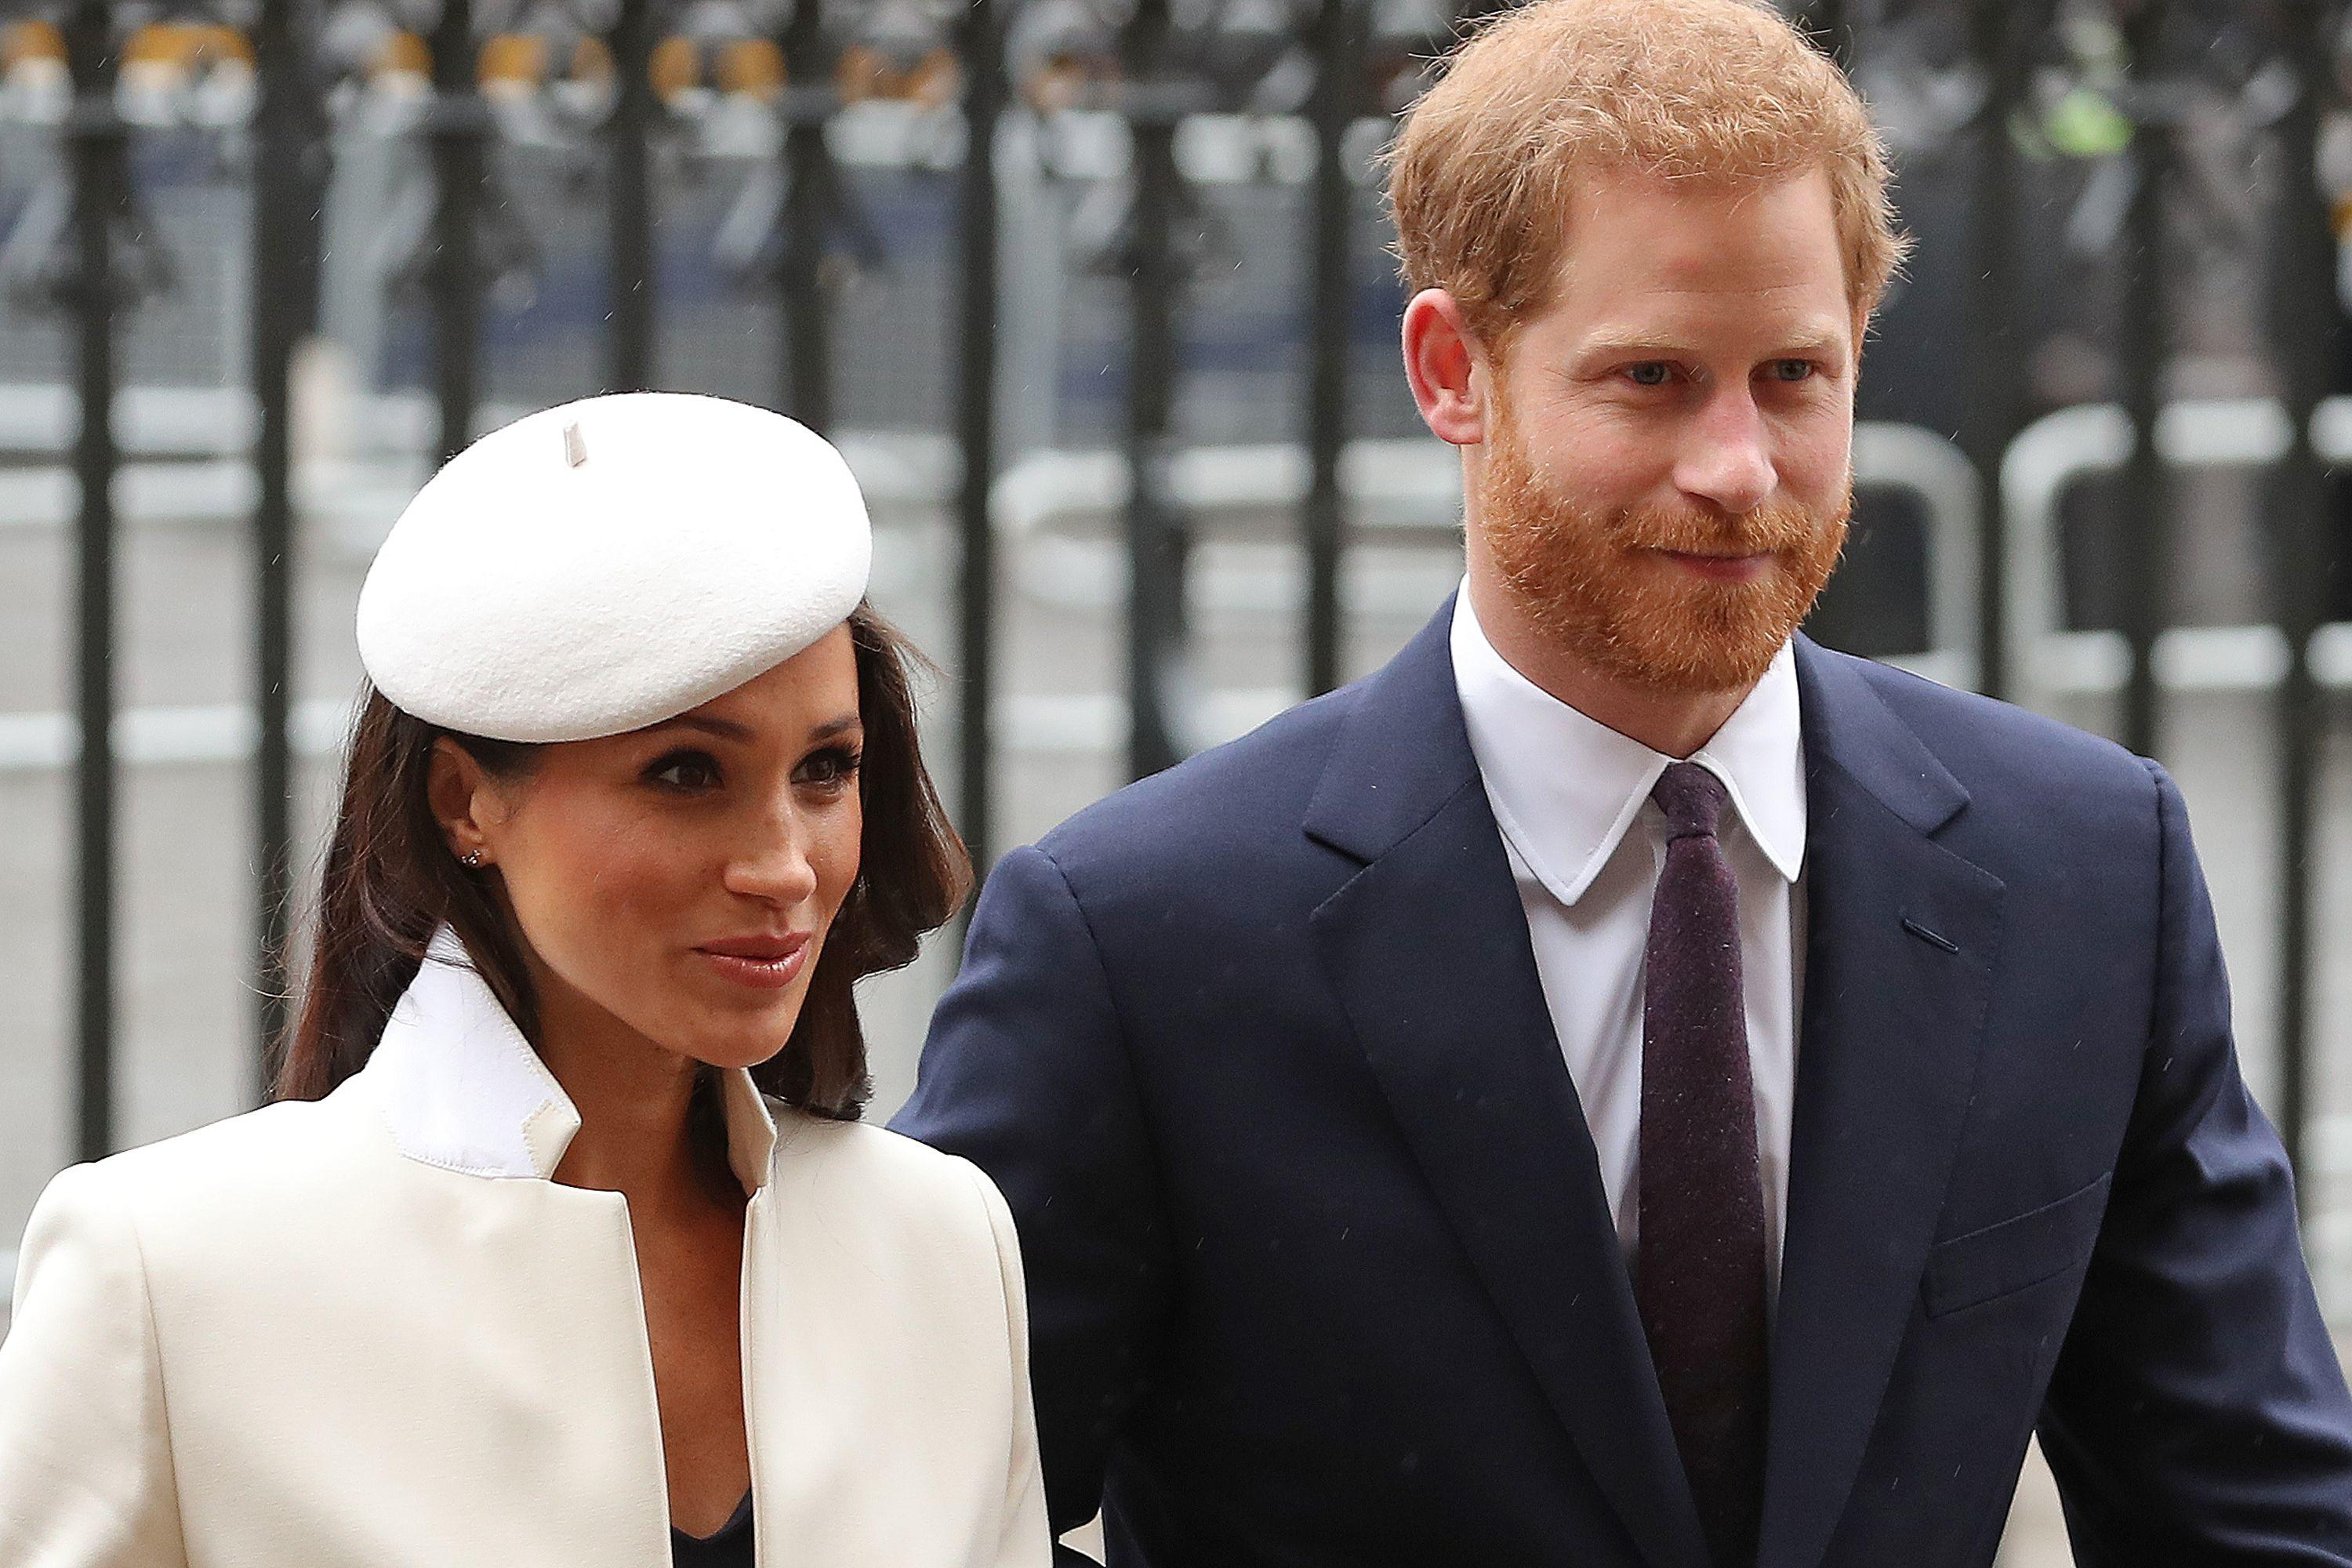 Britain's Prince Harry (R) and his fiancee US actress Meghan Markle attend a Commonwealth Day Service at Westminster Abbey in central London, on March 12, 2018.<br />Britain's Queen Elizabeth II has been the Head of the Commonwealth throughout her reign. Organised by the Royal Commonwealth Society, the Service is the largest annual inter-faith gathering in the United Kingdom. / AFP PHOTO / Daniel LEAL-OLIVAS        (Photo credit should read DANIEL LEAL-OLIVAS/AFP/Getty Images)